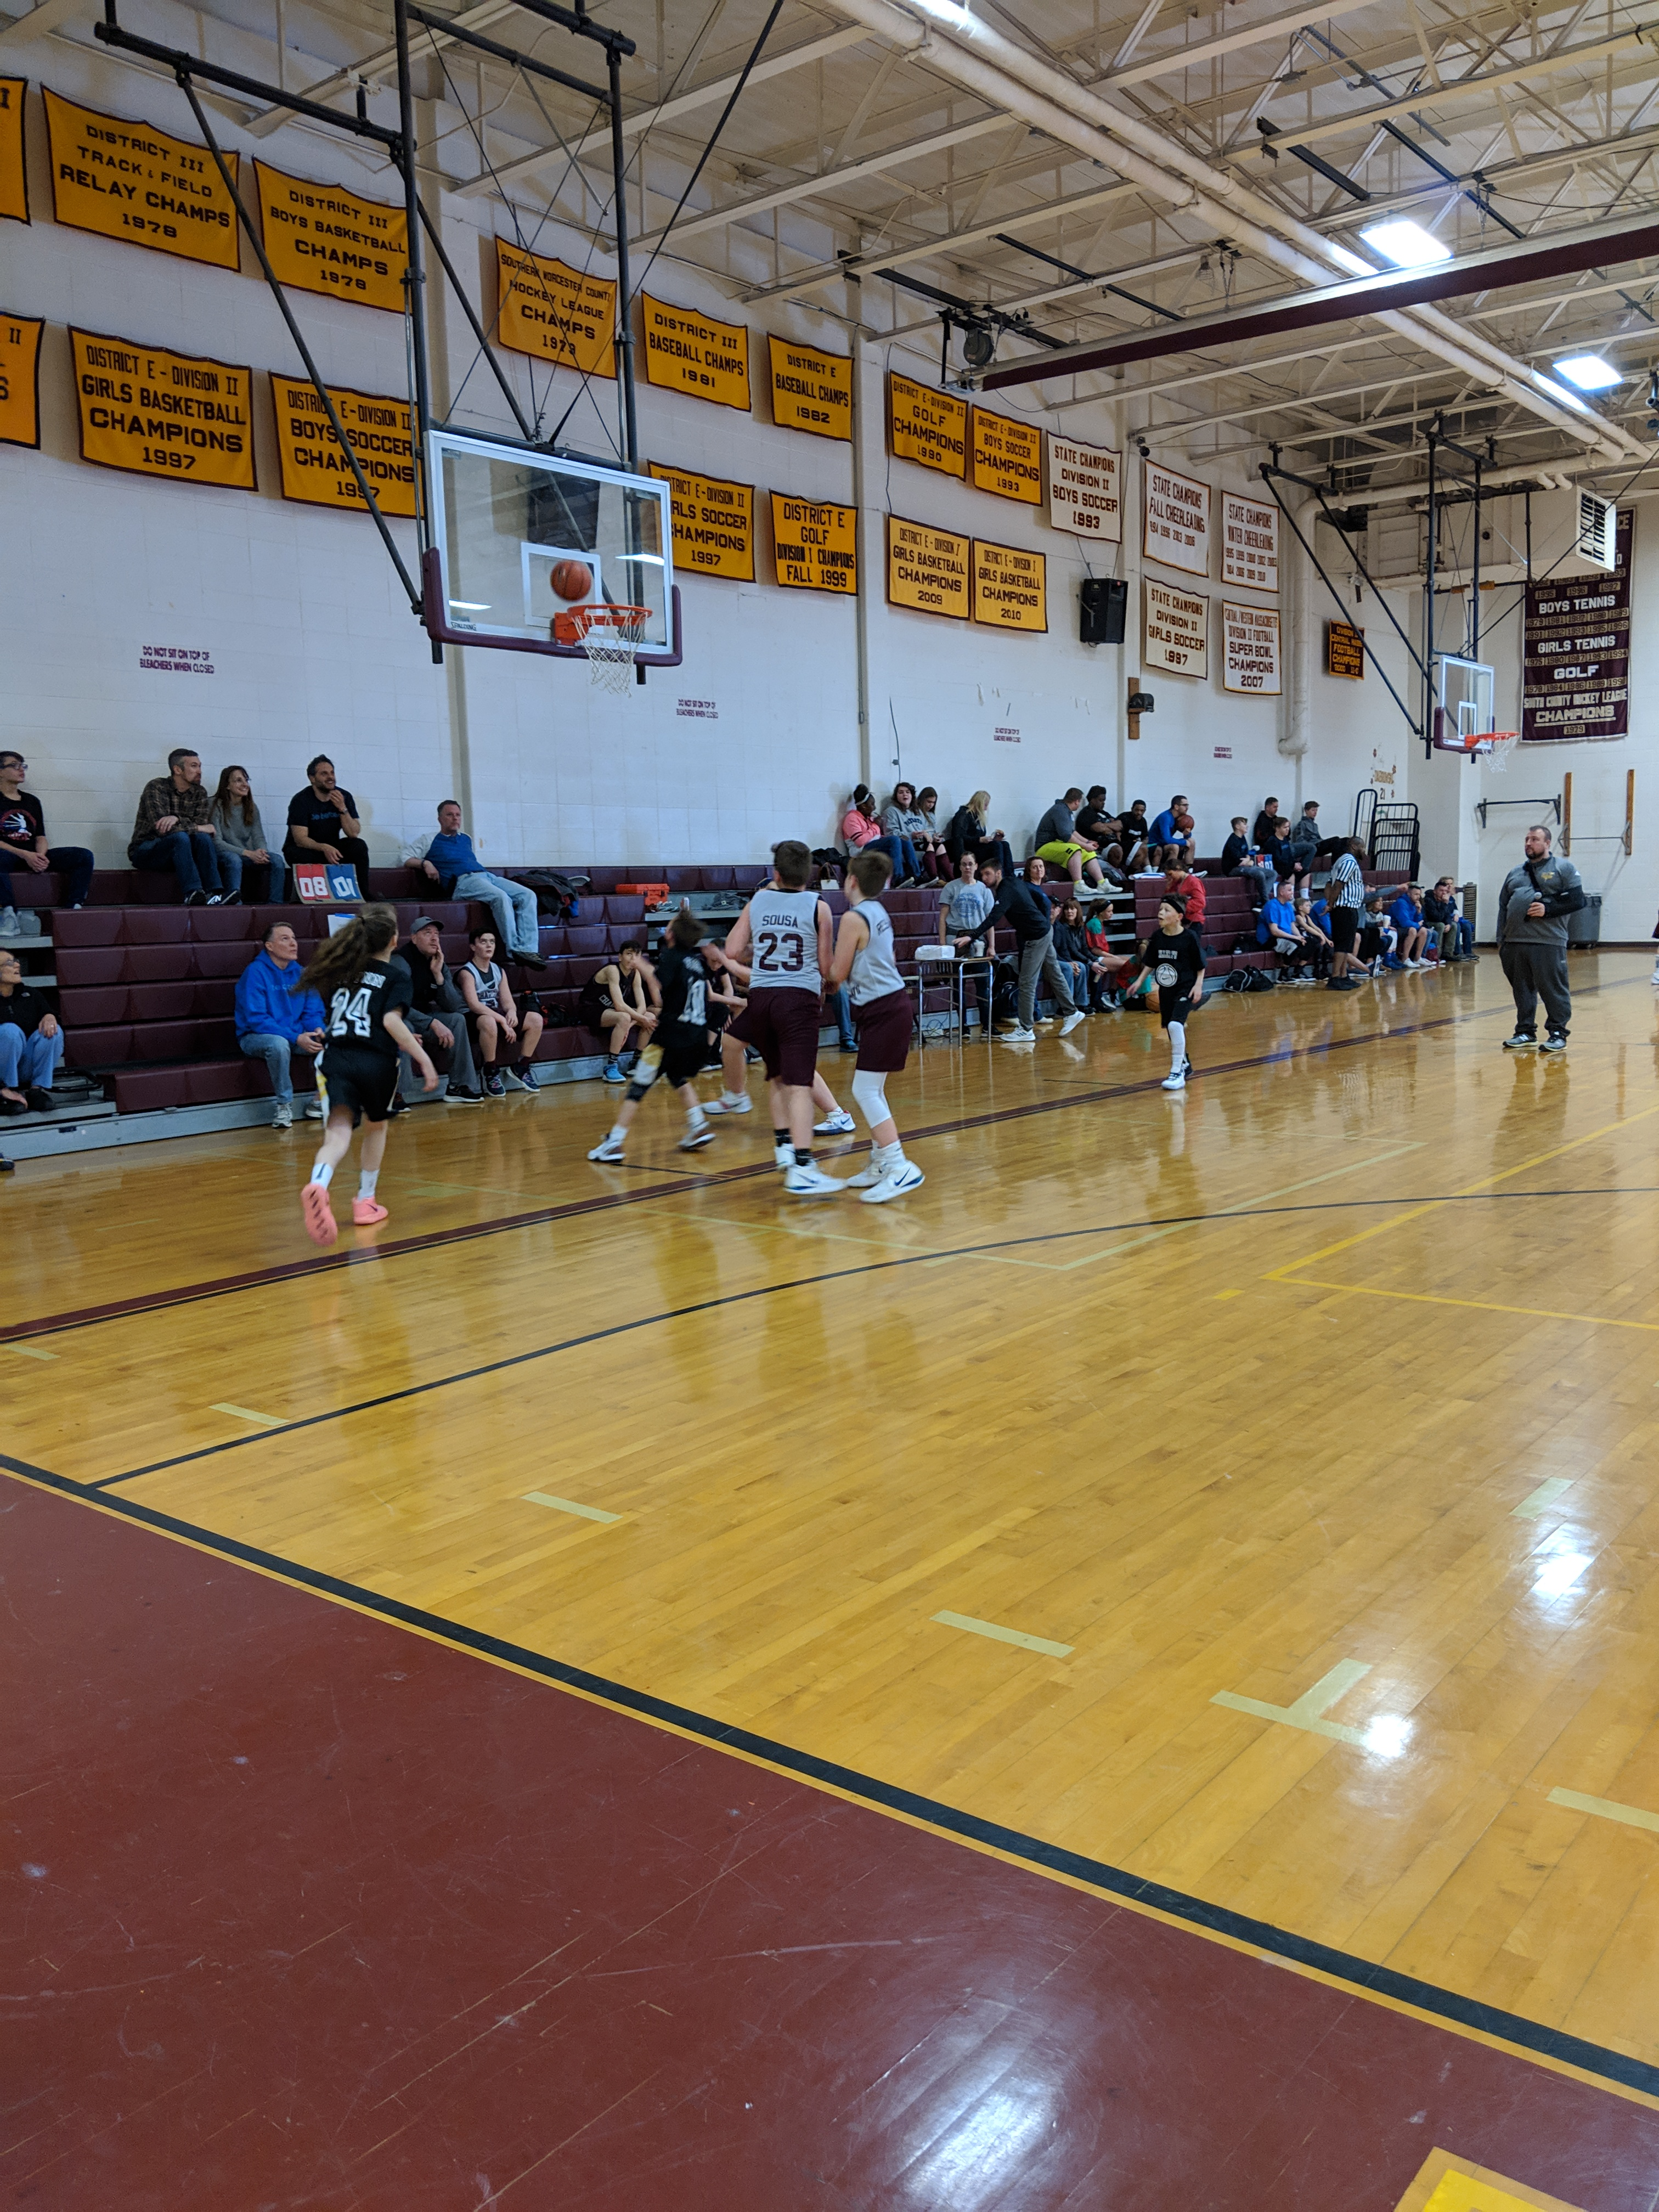 An image from the 2nd Annual 3 on 3 Basketball Tournament 2019 gallery